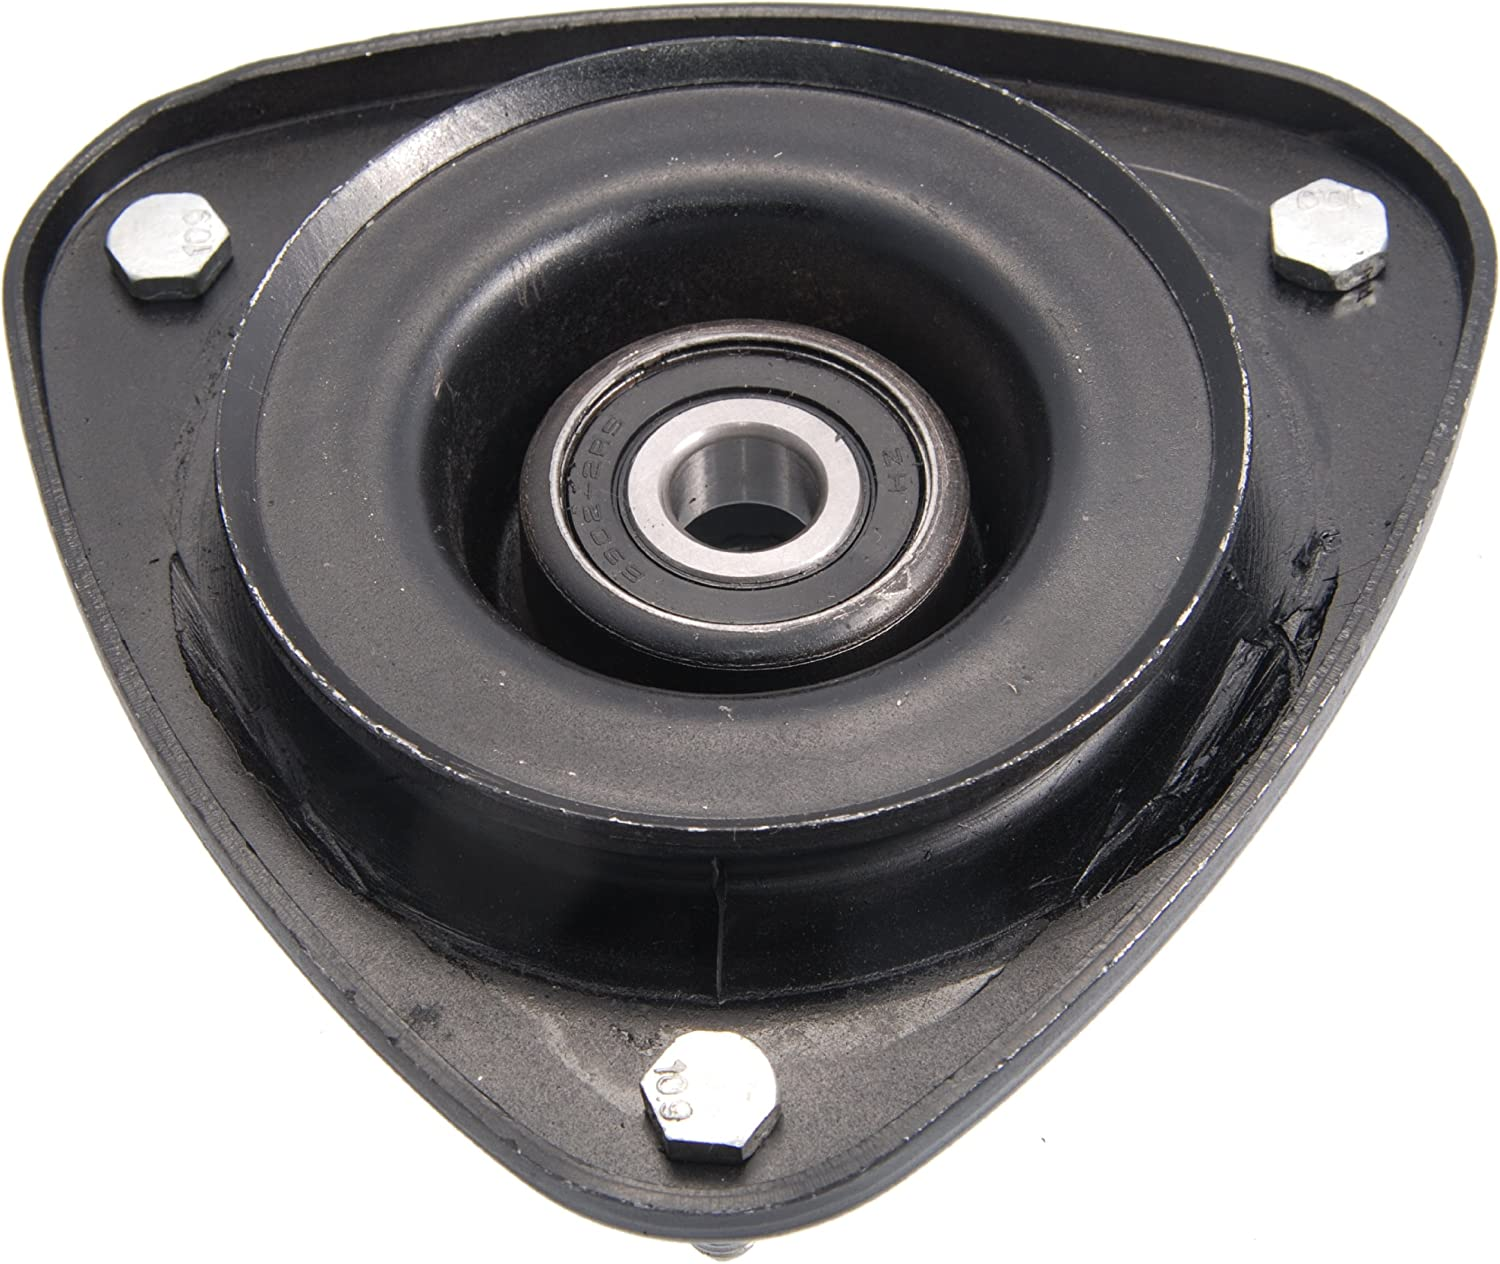 20320Aa110 - Front Shock Absorber Support Subaru For Sale Special Price Febest Sales for sale